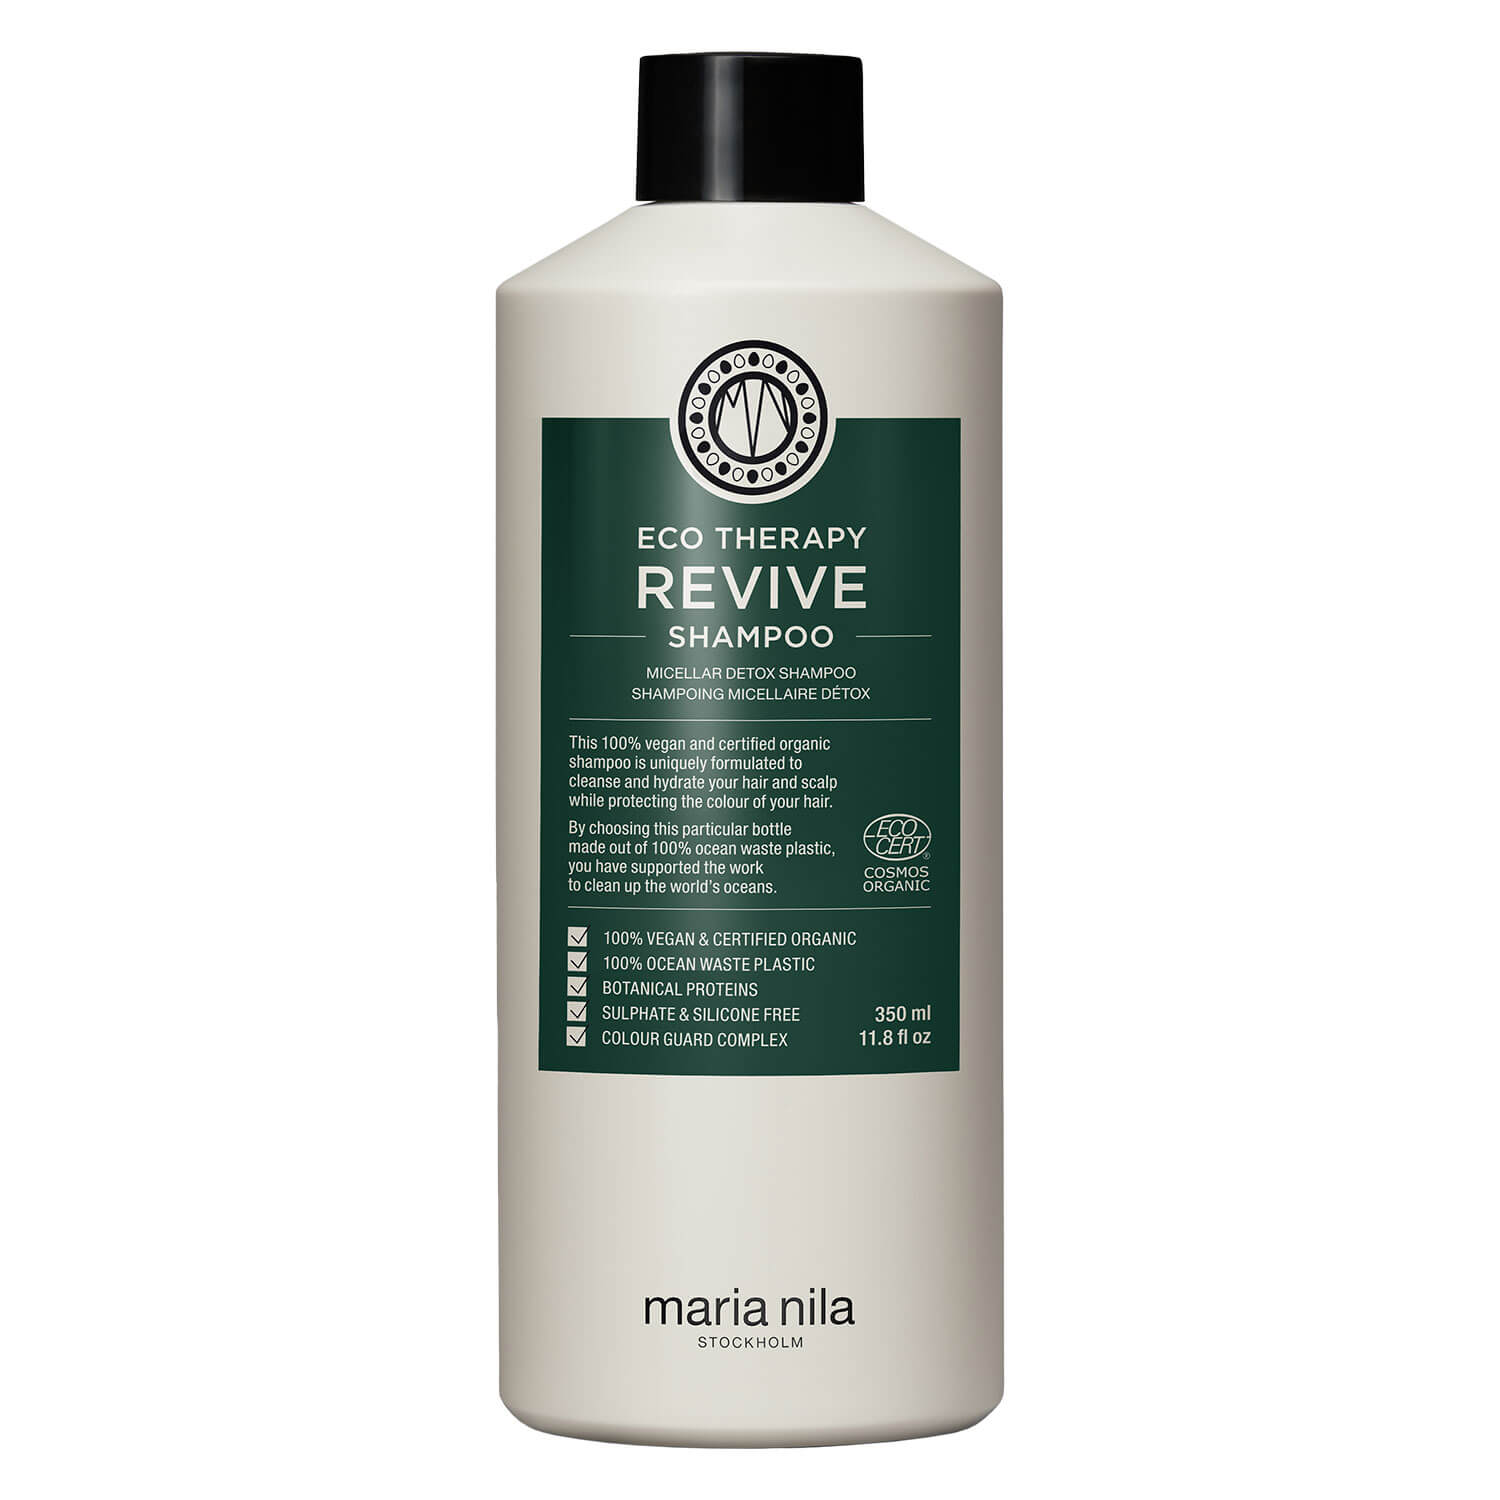 Care & Style - Eco Therapy Revive Shampoo